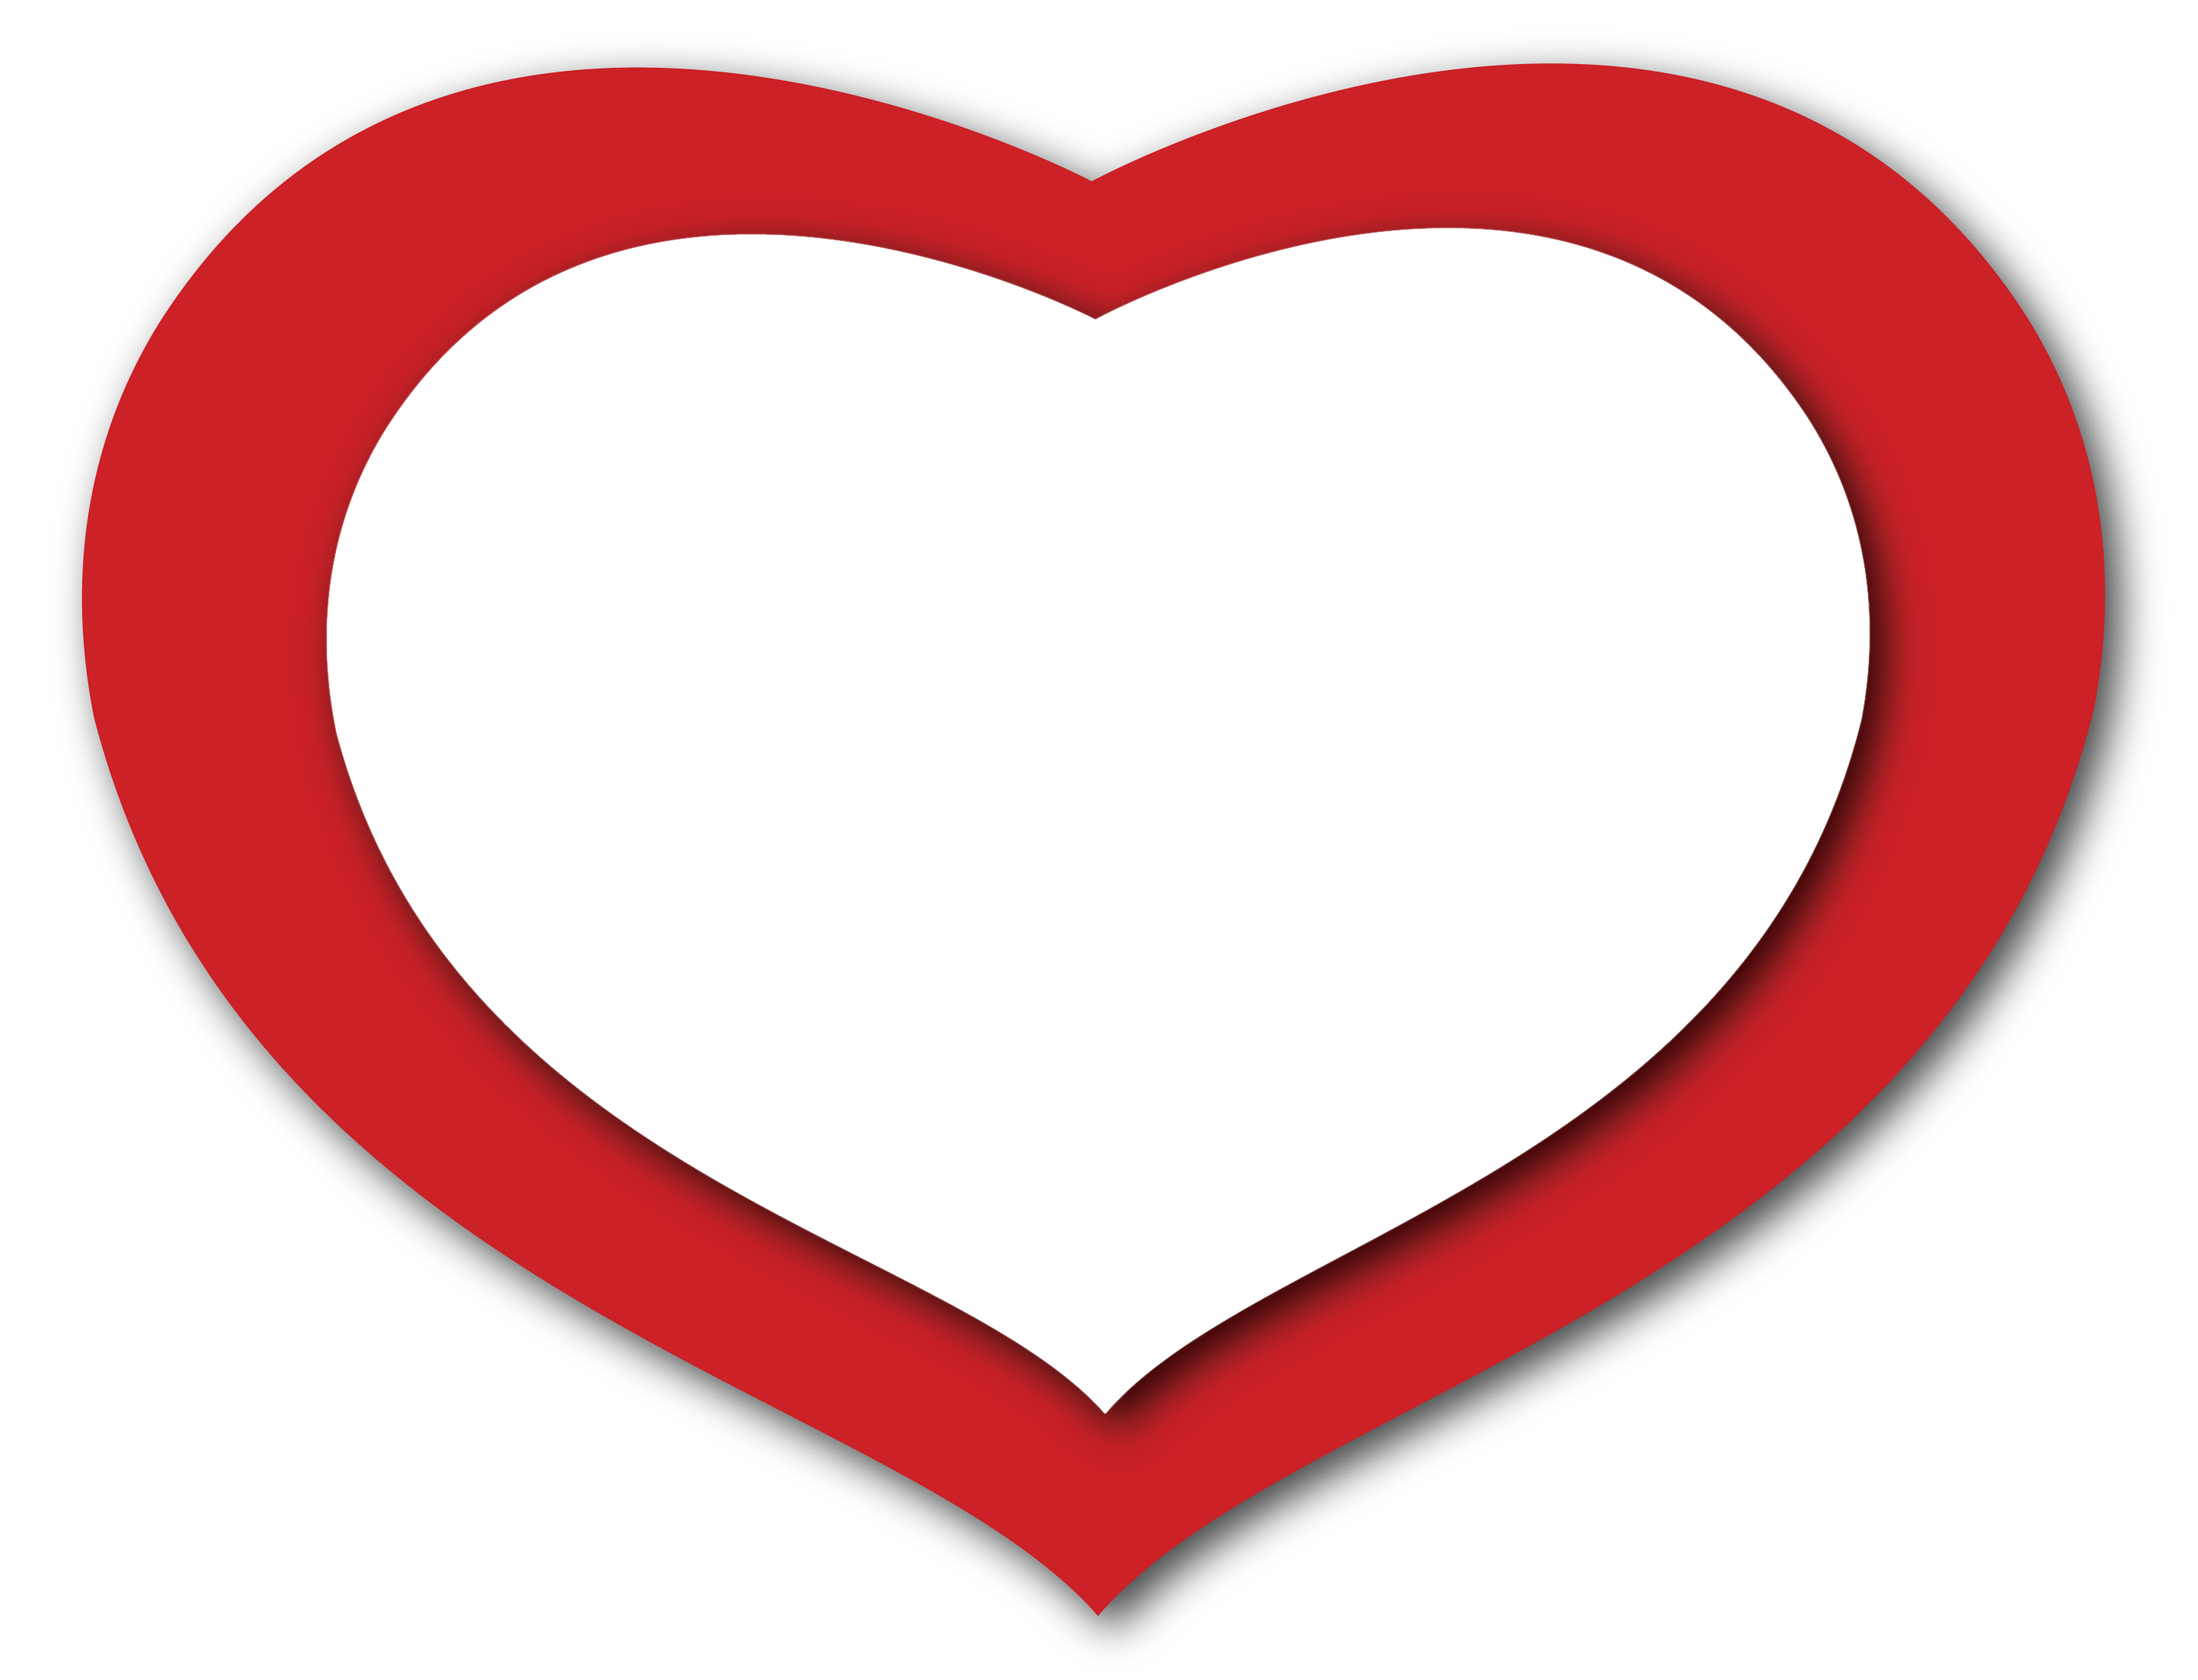 Hearts clipart red. Transparent heart png gallery